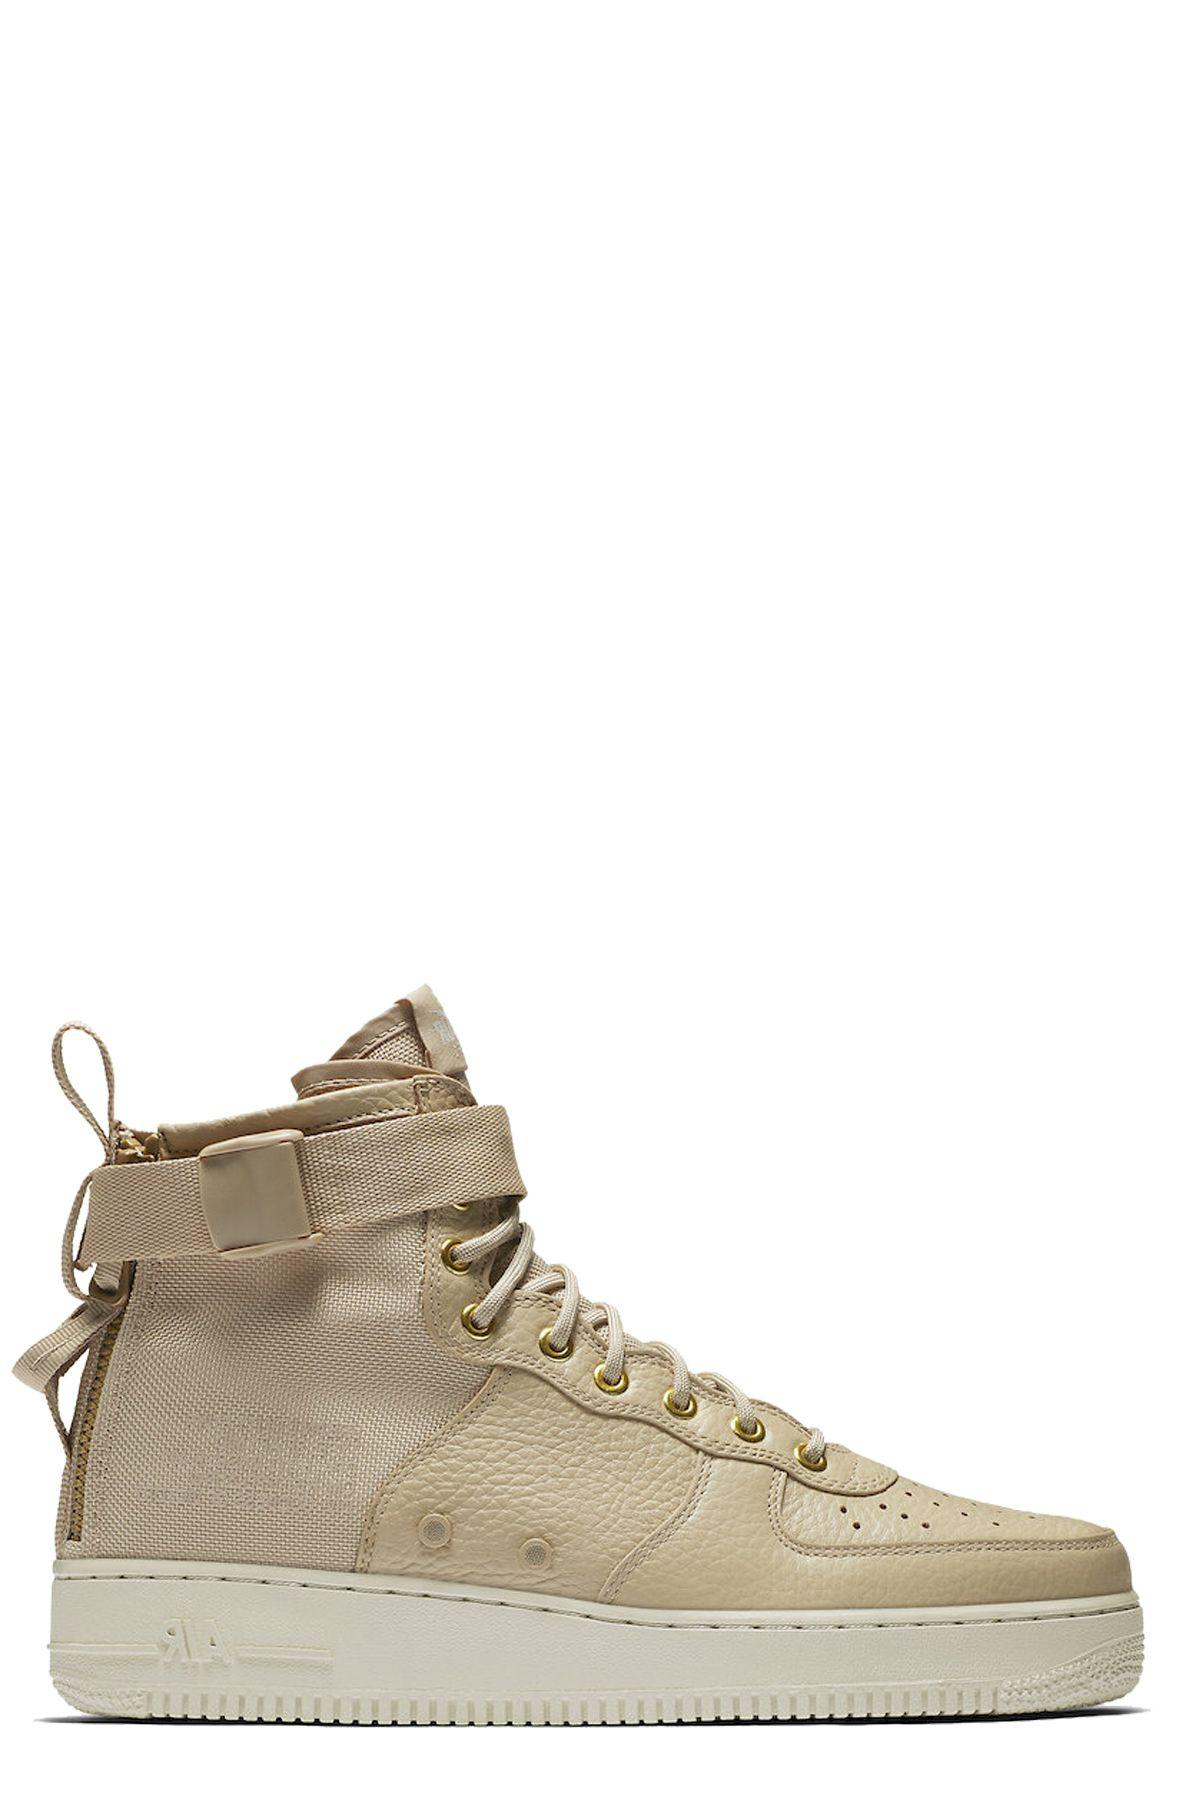 uk availability 8d213 8359d Nike Special Field Air Force 1 917753-200 In Beige-Panna